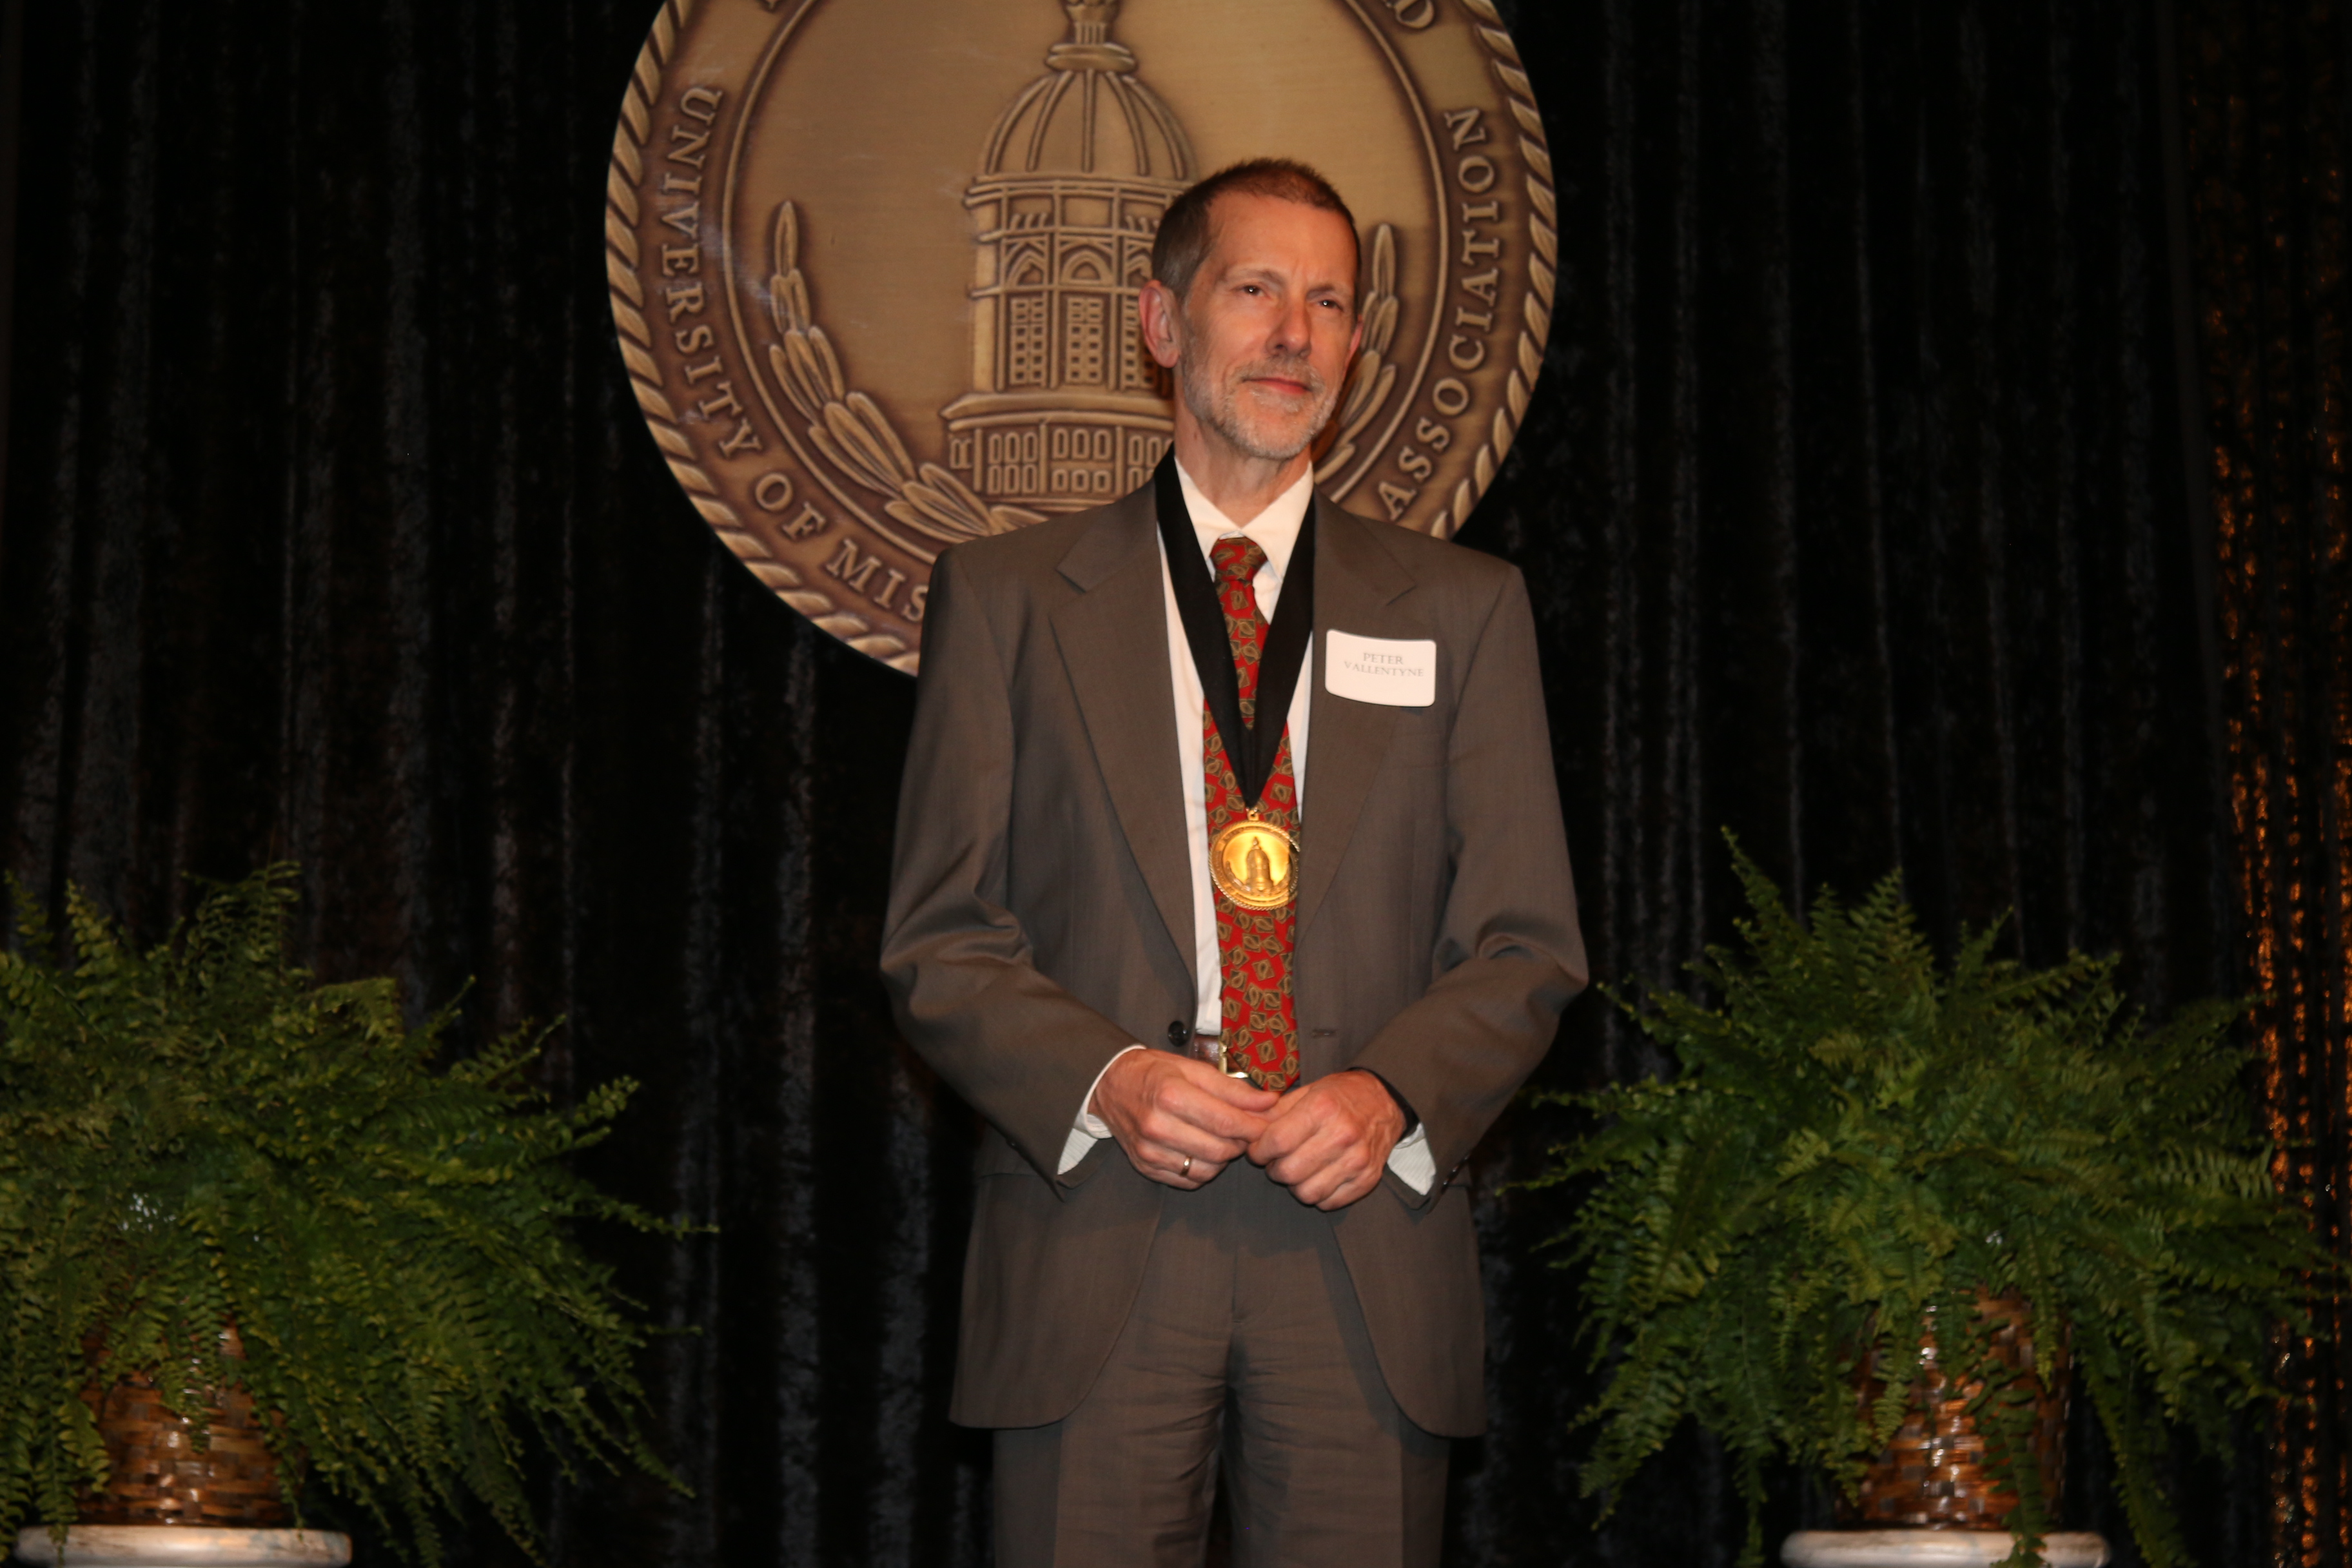 Dr. Peter Vallentyne at the Faculty-Alumni Awards